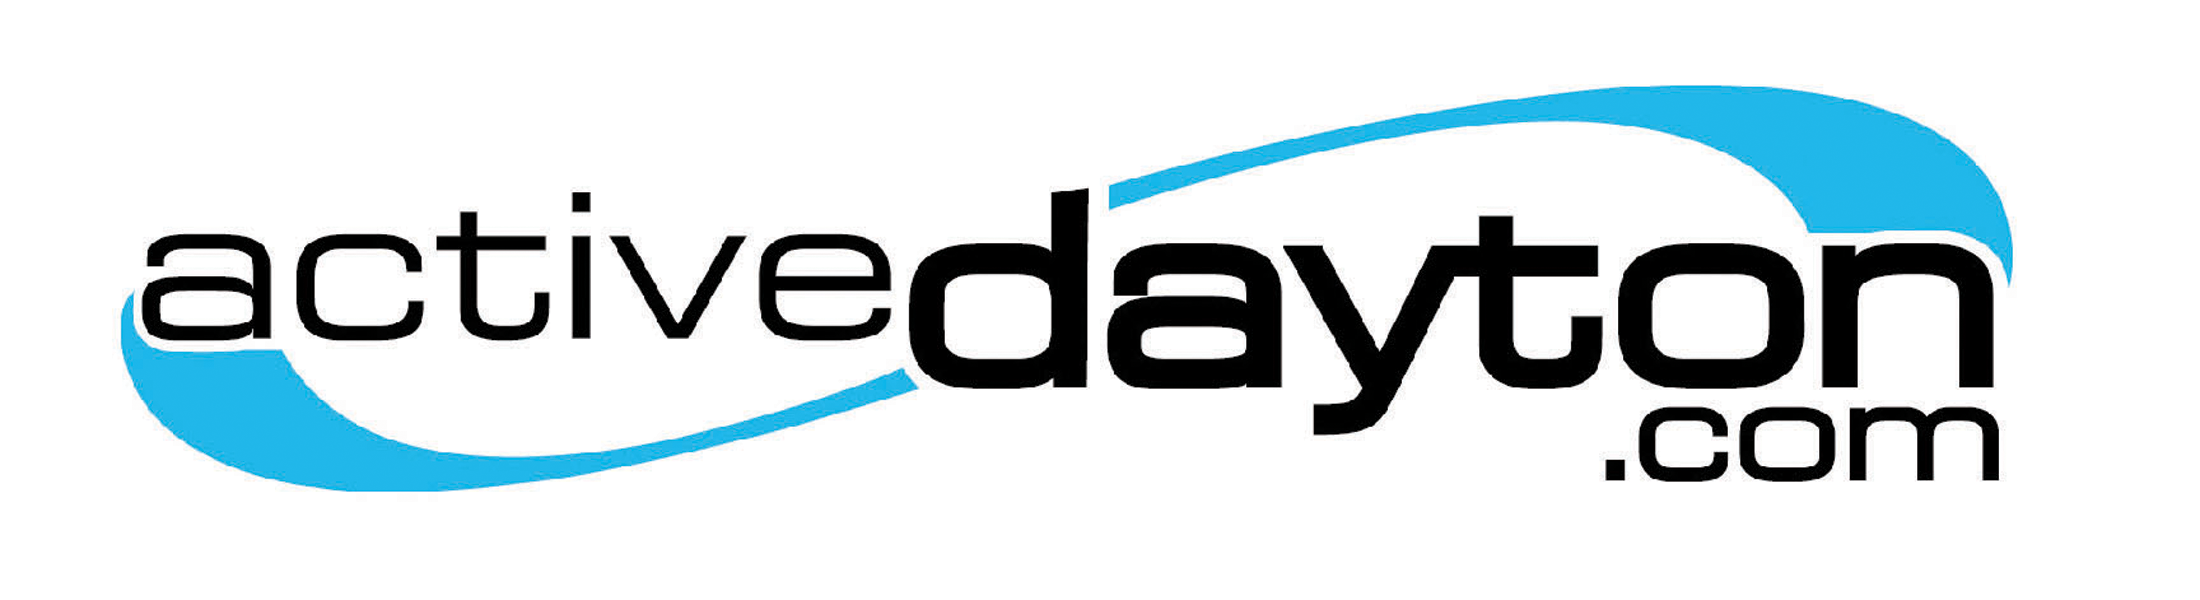 The pre-2015 logo for ActiveDayton.com. The logo was used online and in the print edition.